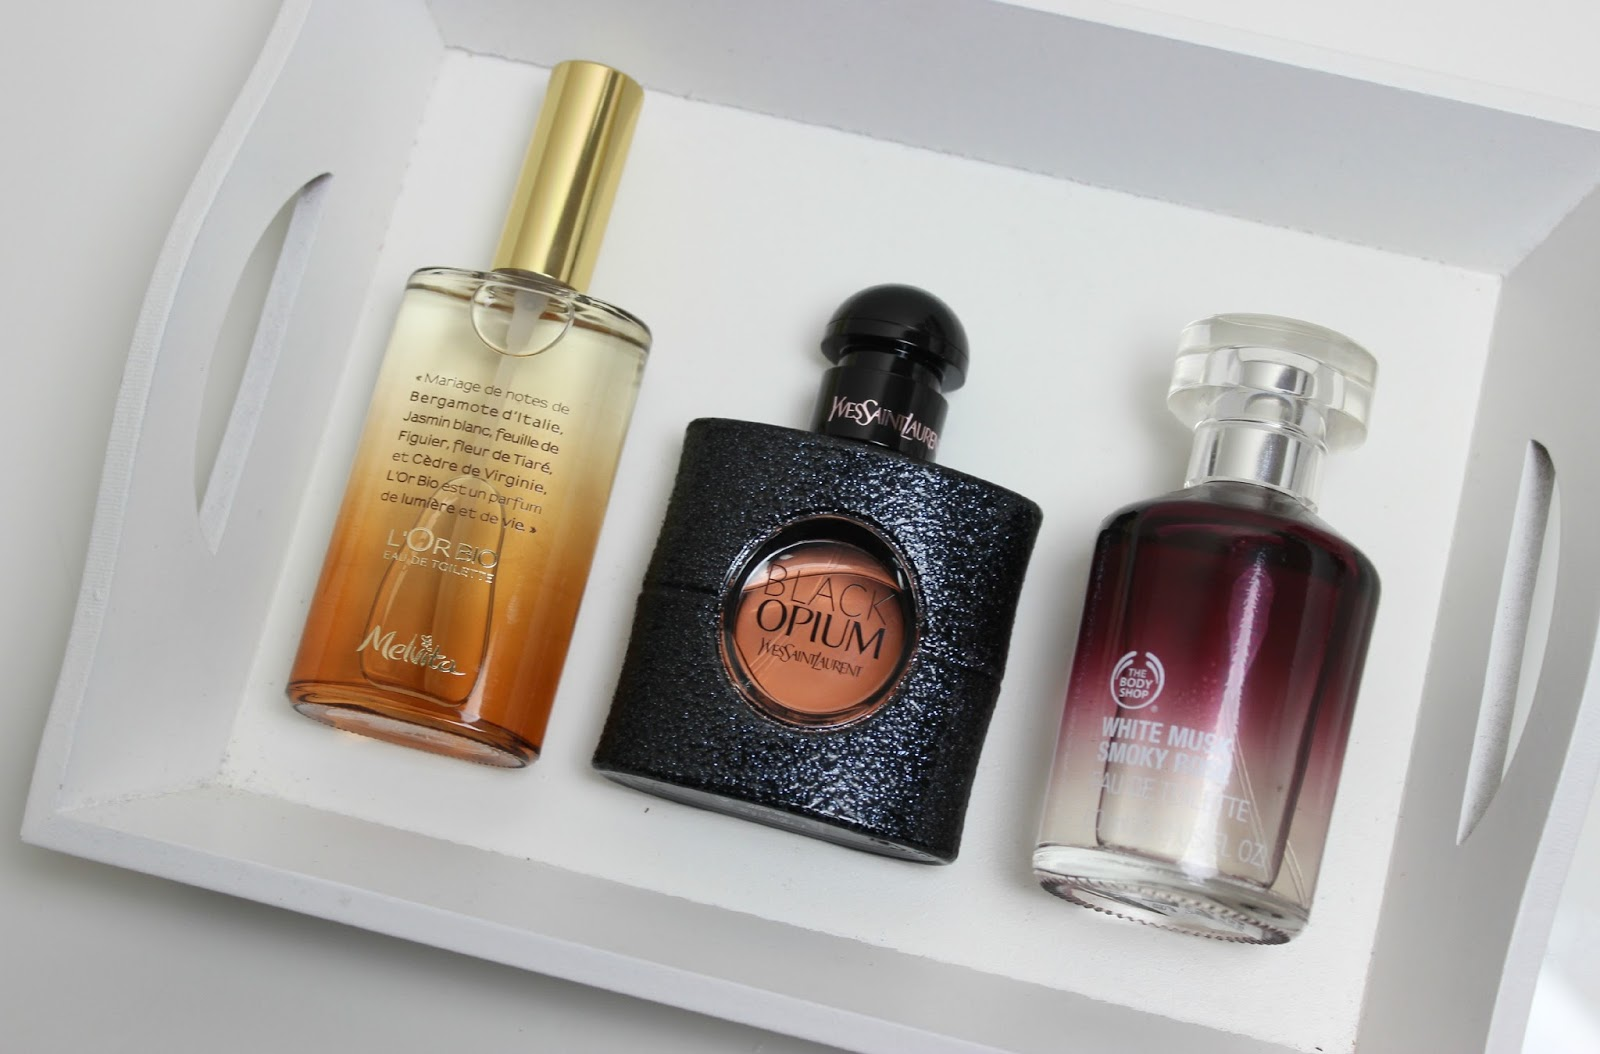 A picture of Melvita L'Or Bio Eau de Toilette, YSL Black Opium and The Body Shop White Musk Smoky Rose Eau de Parfum